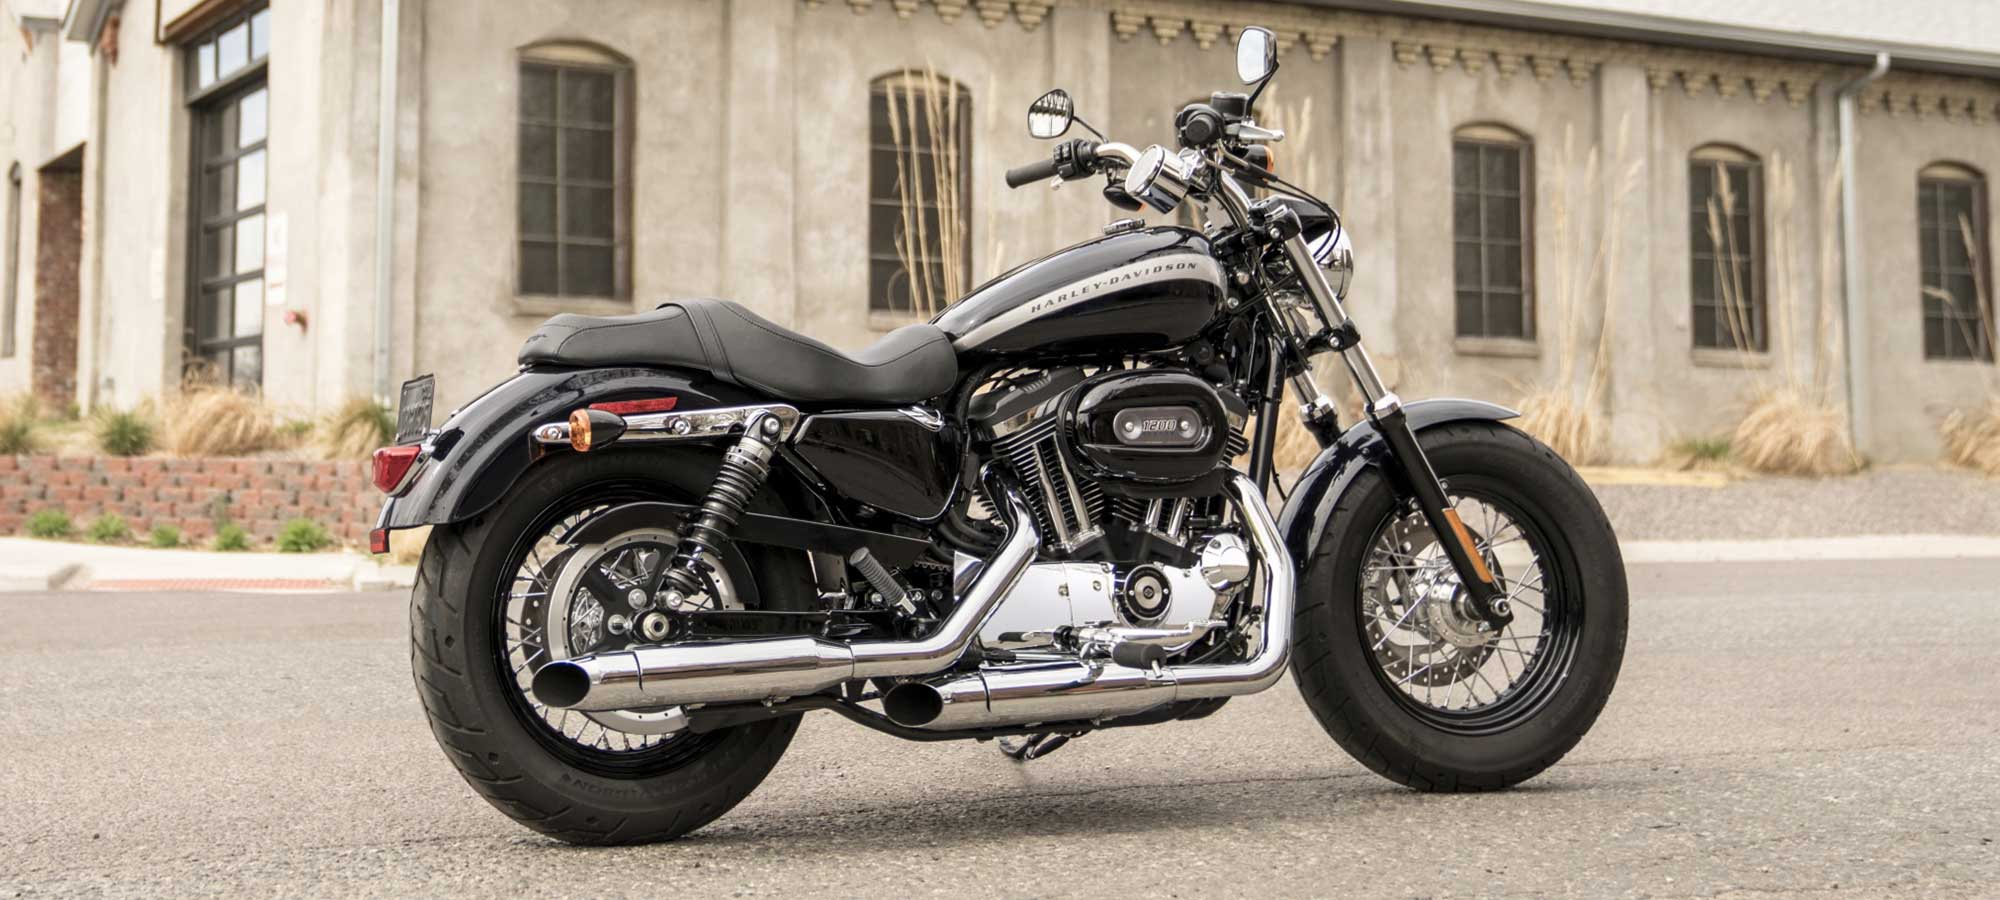 hight resolution of 5 things we d change on the harley davidson sportster 1200 custom